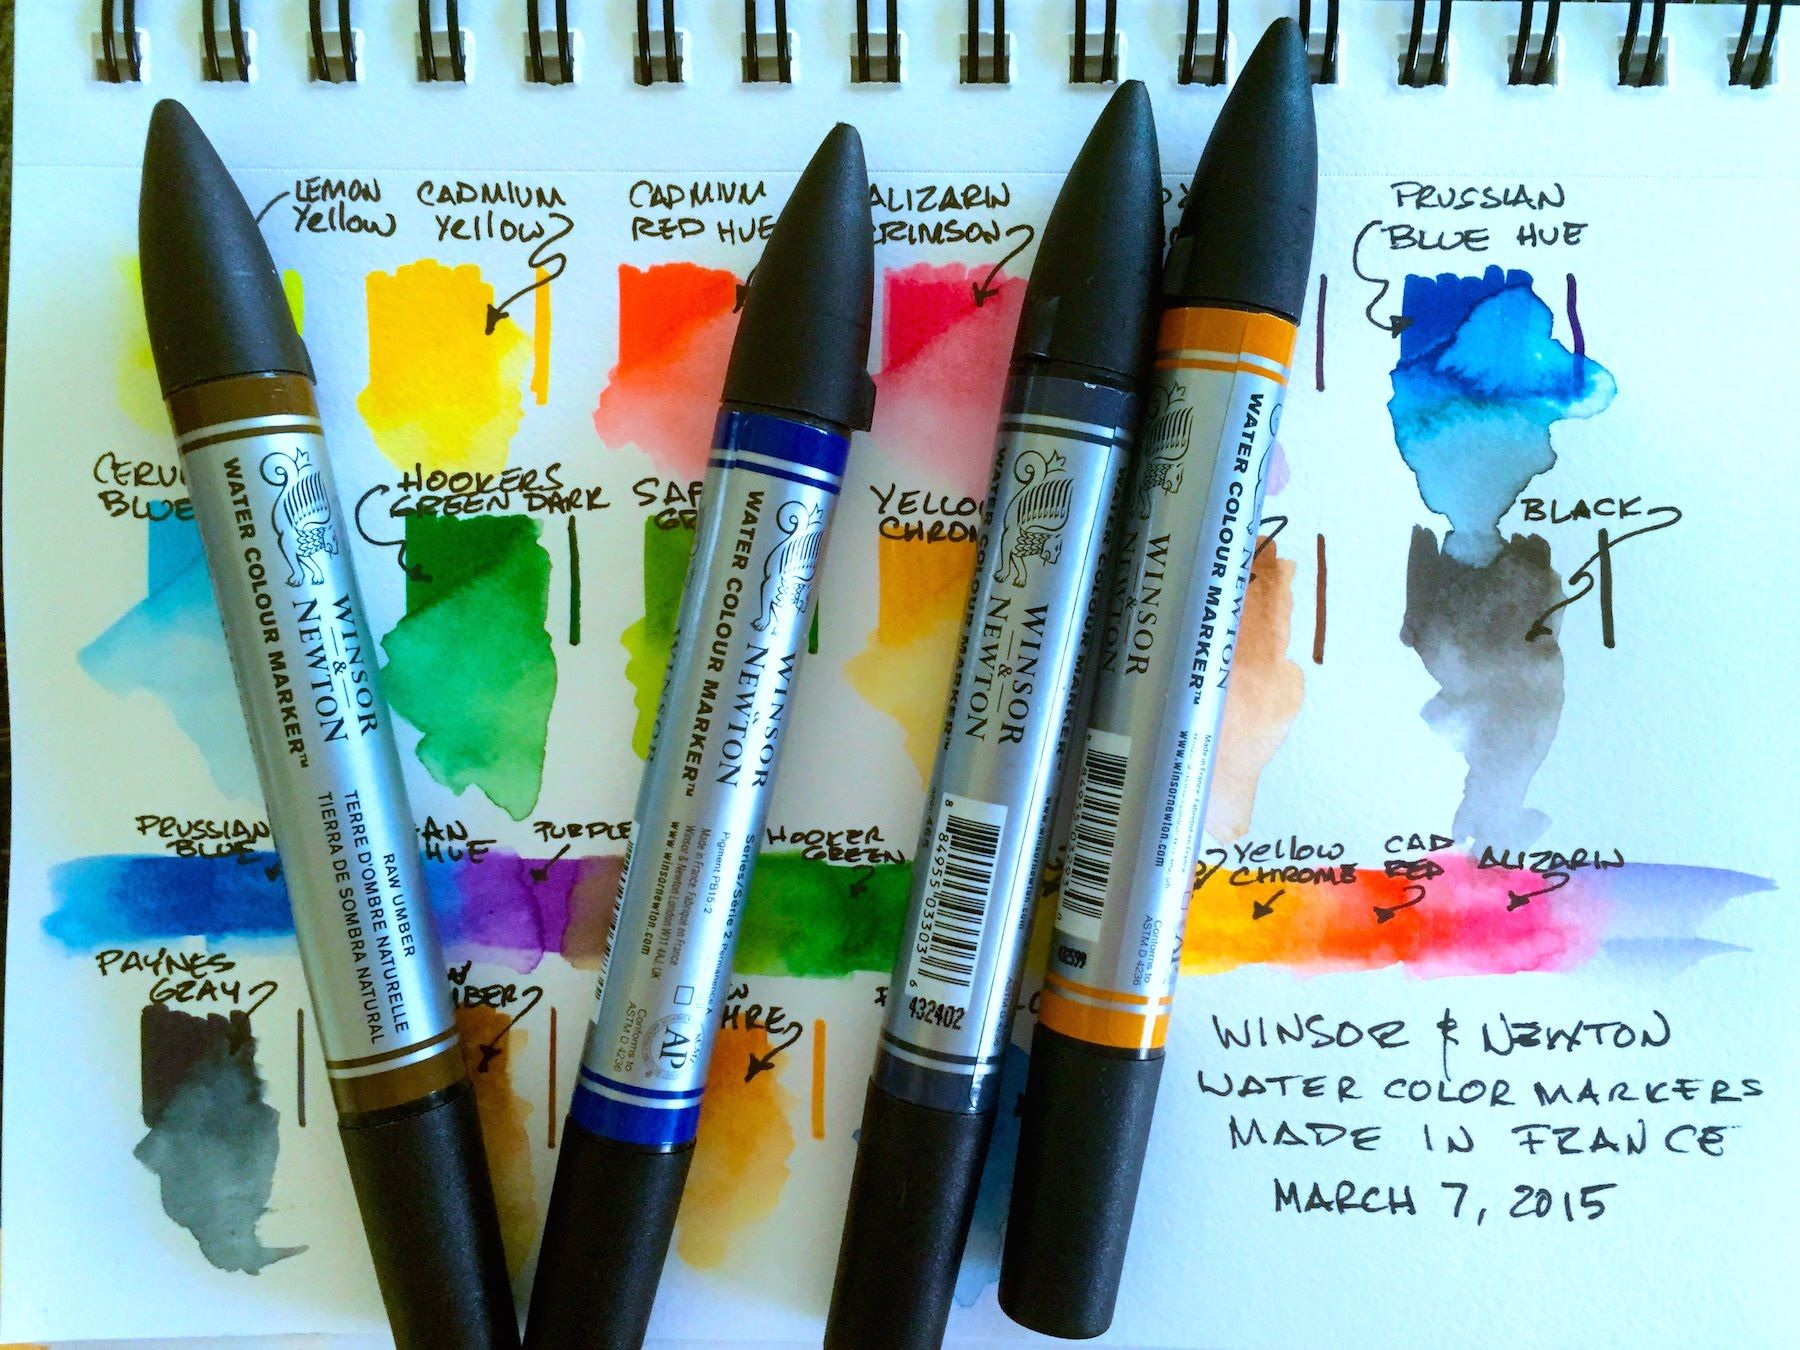 Winsor Newton Watercolor Markers I Think I Might Try Getting And